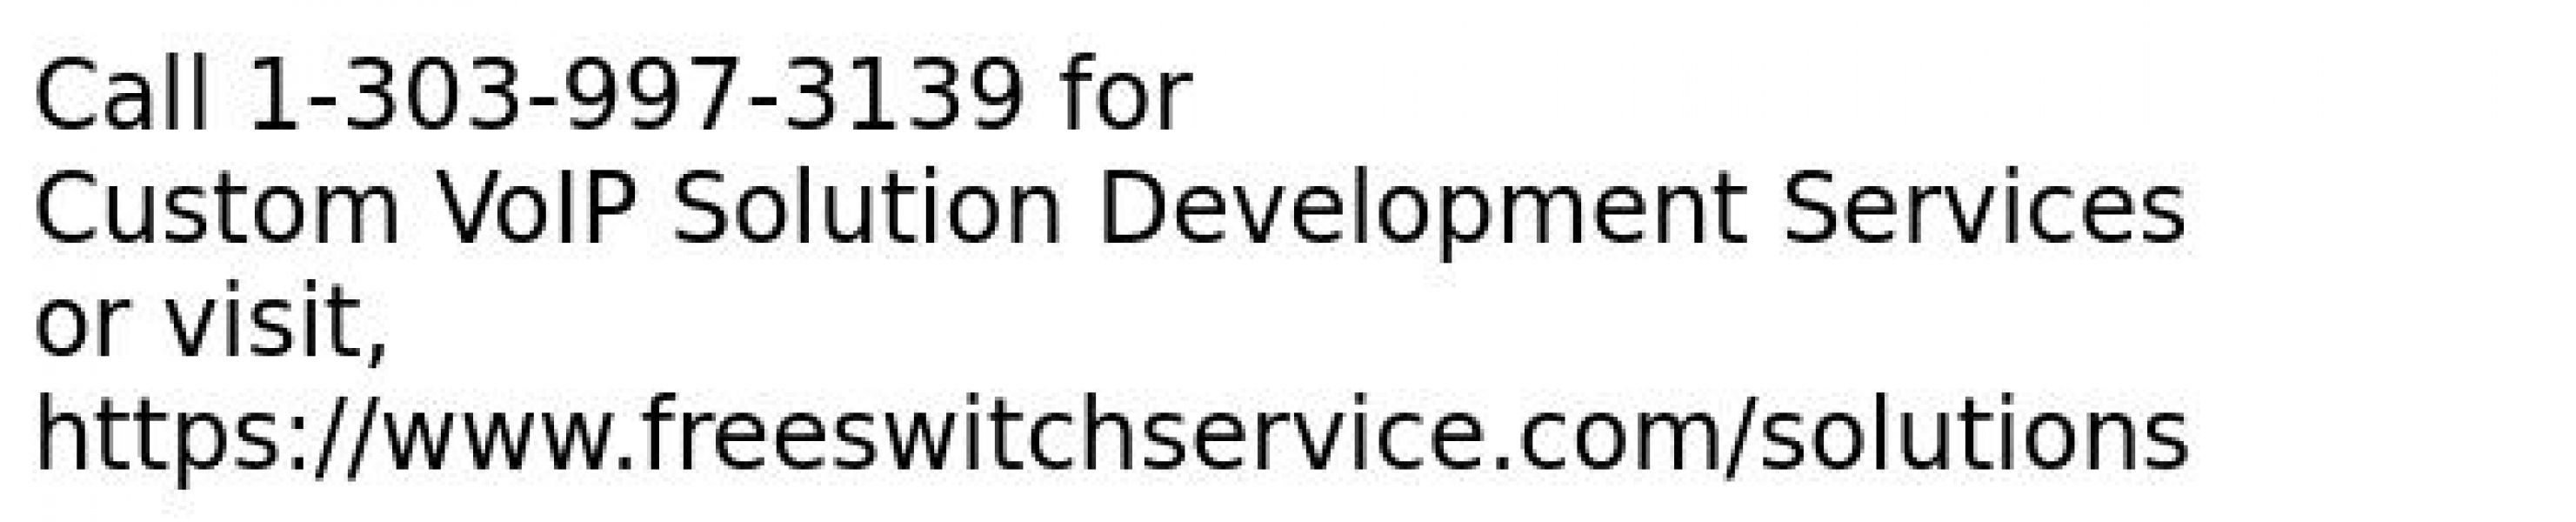 Custom VoIP Solution Development Services in FreeSWITCH